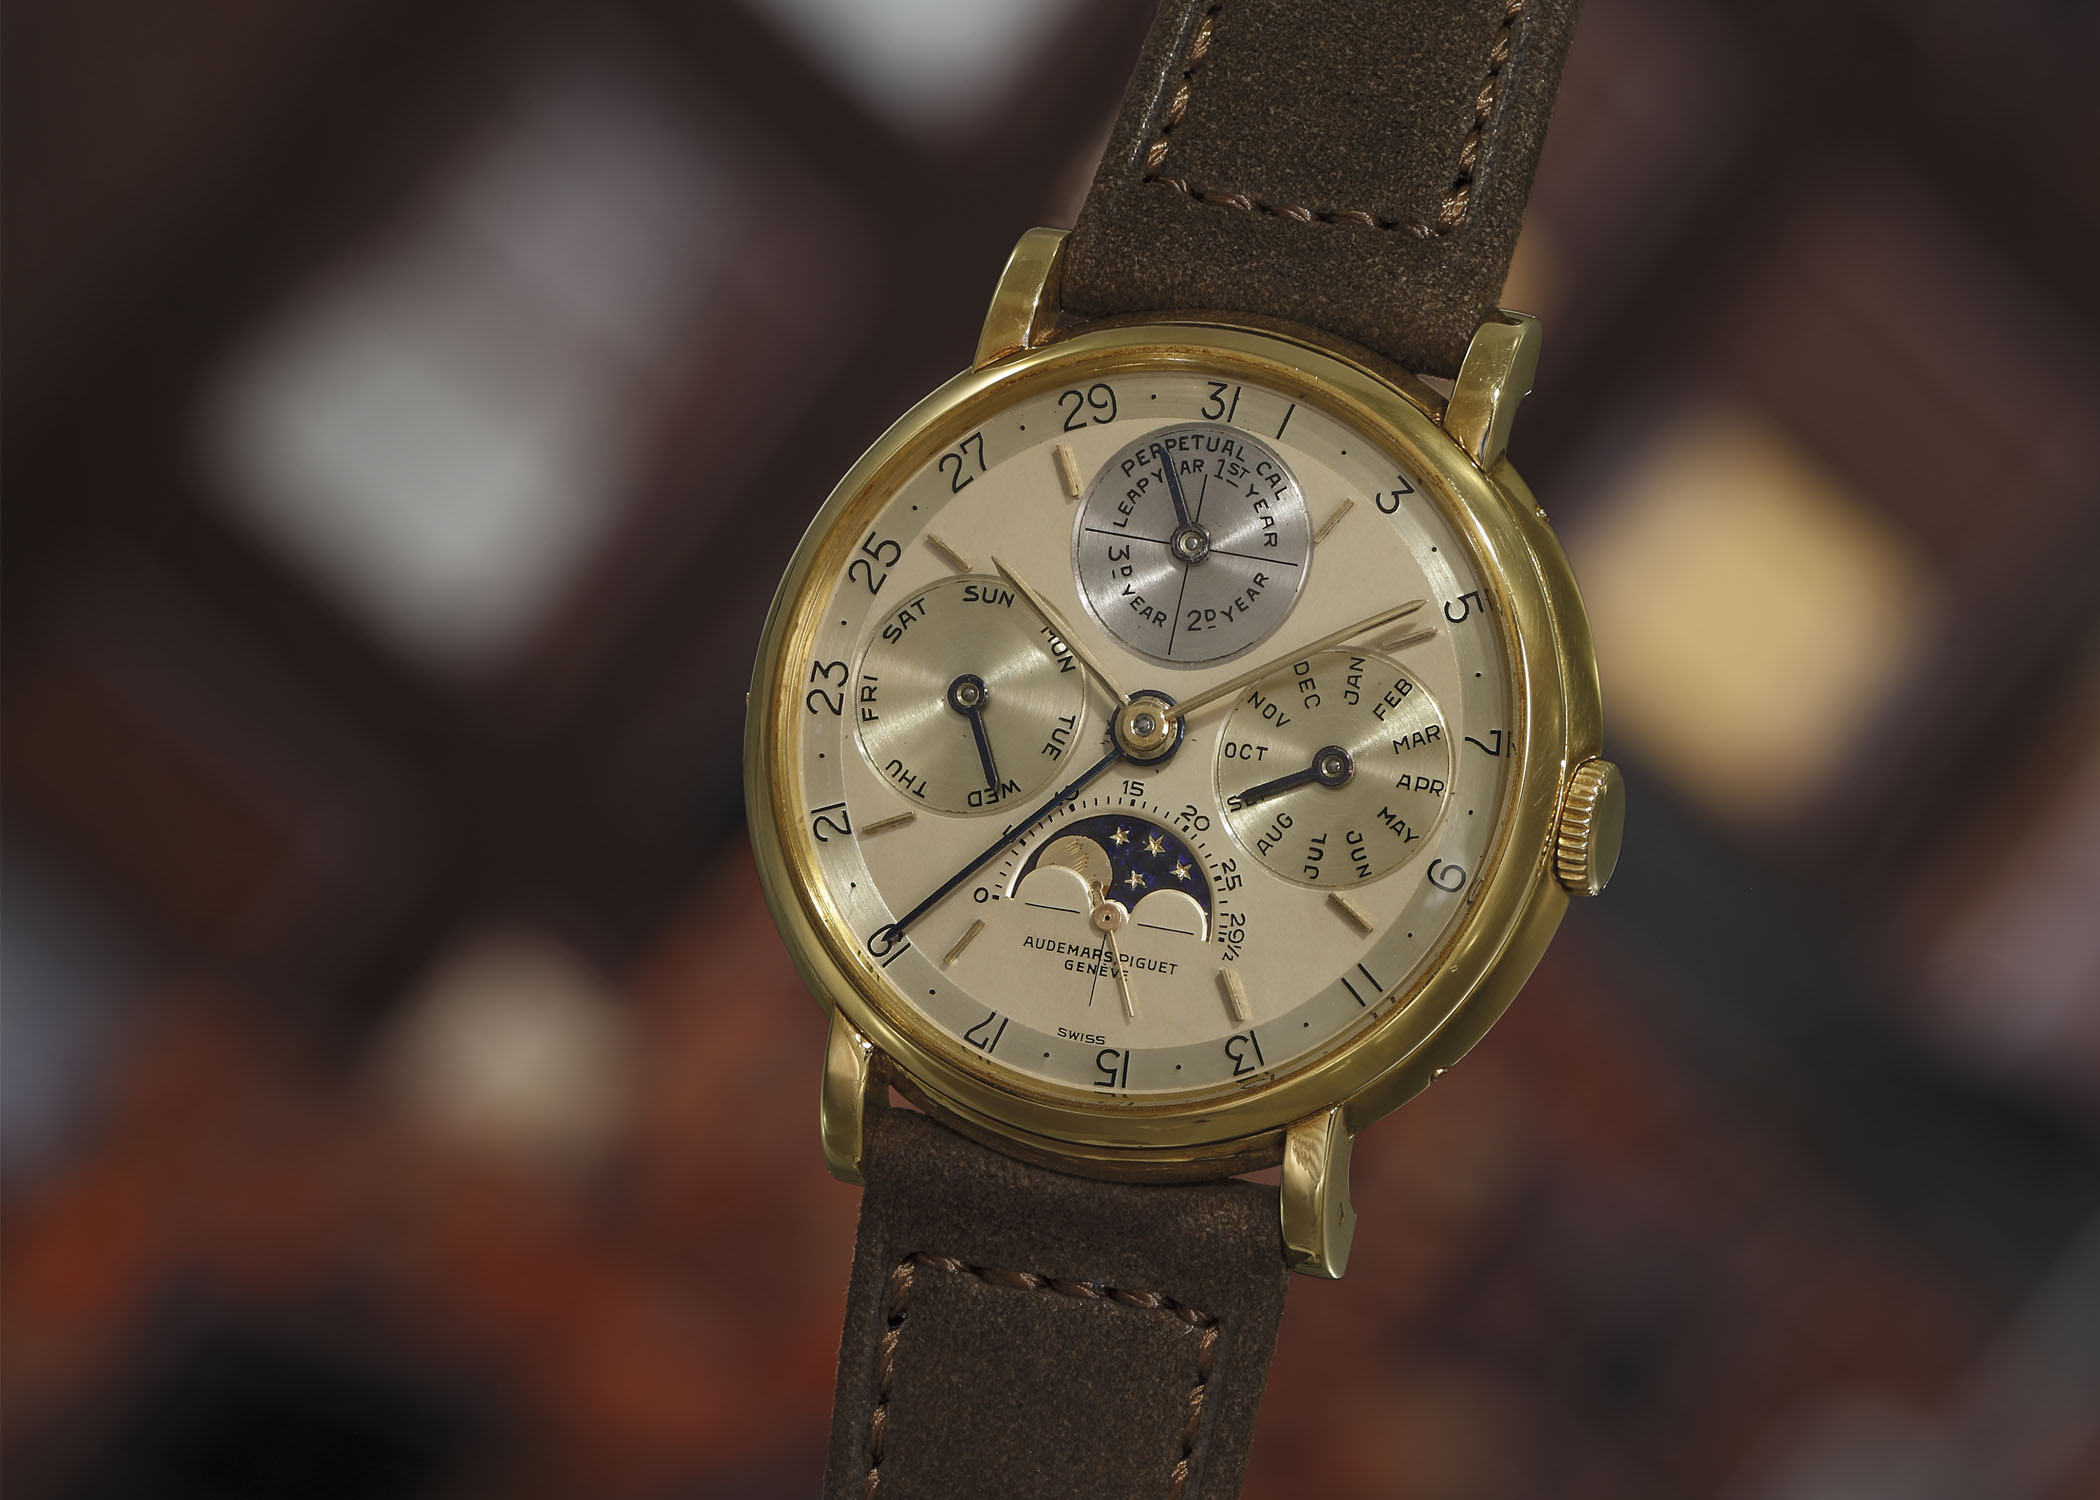 Audemars Piguet Perpetual Calendar 5516 - Phillips New York Auction